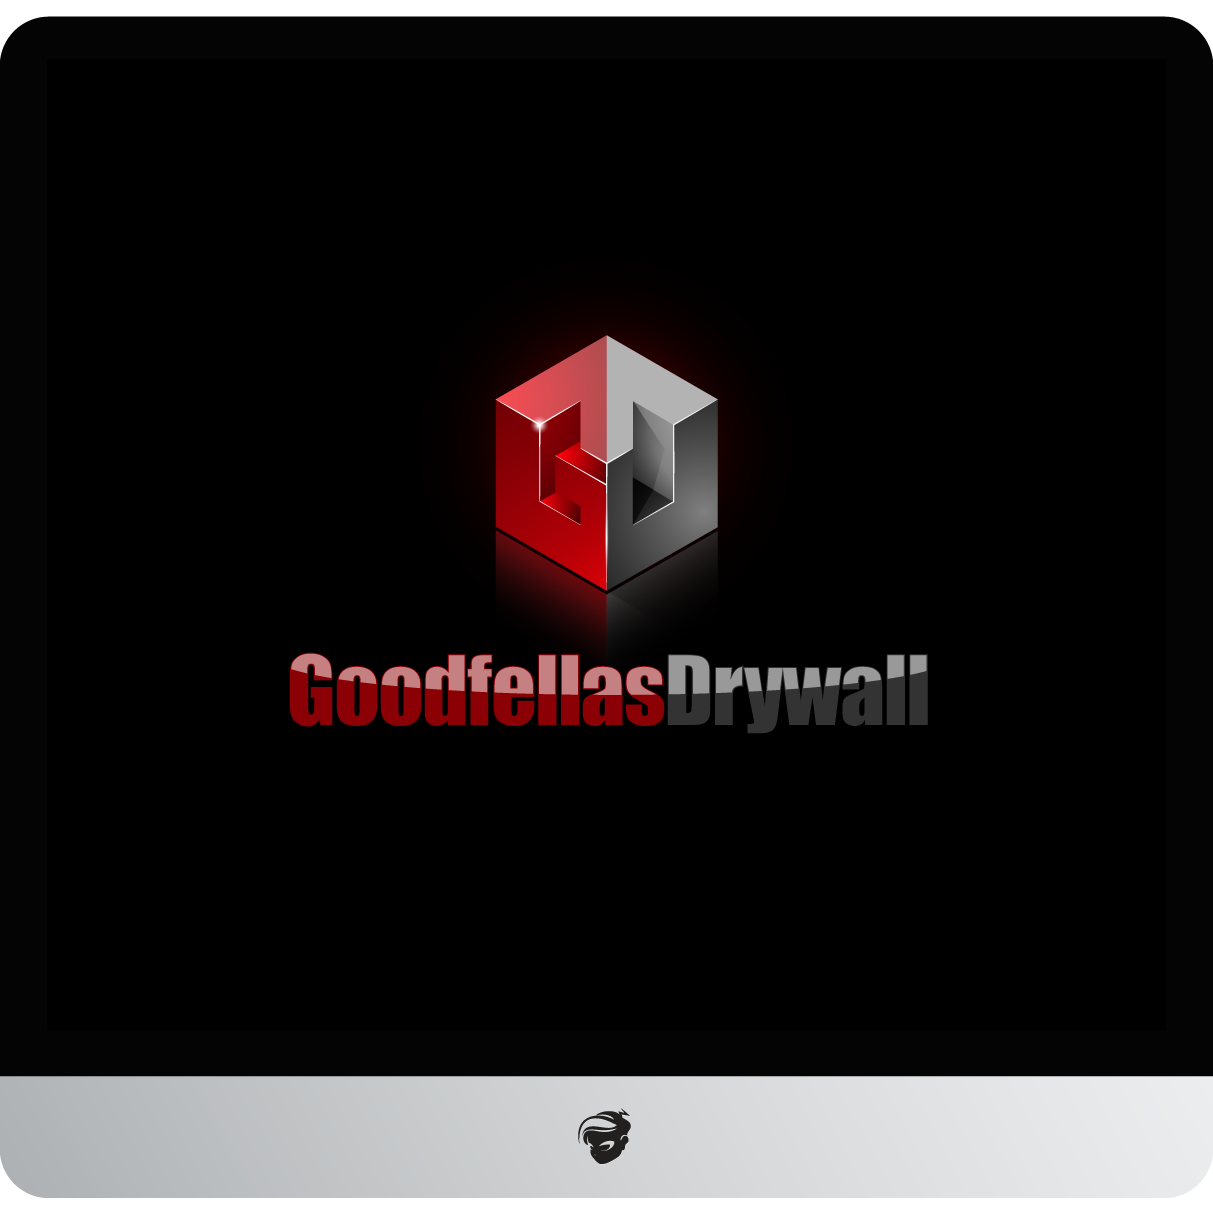 Logo Design by zesthar - Entry No. 197 in the Logo Design Contest Creative Logo Design for Goodfellas Drywall.